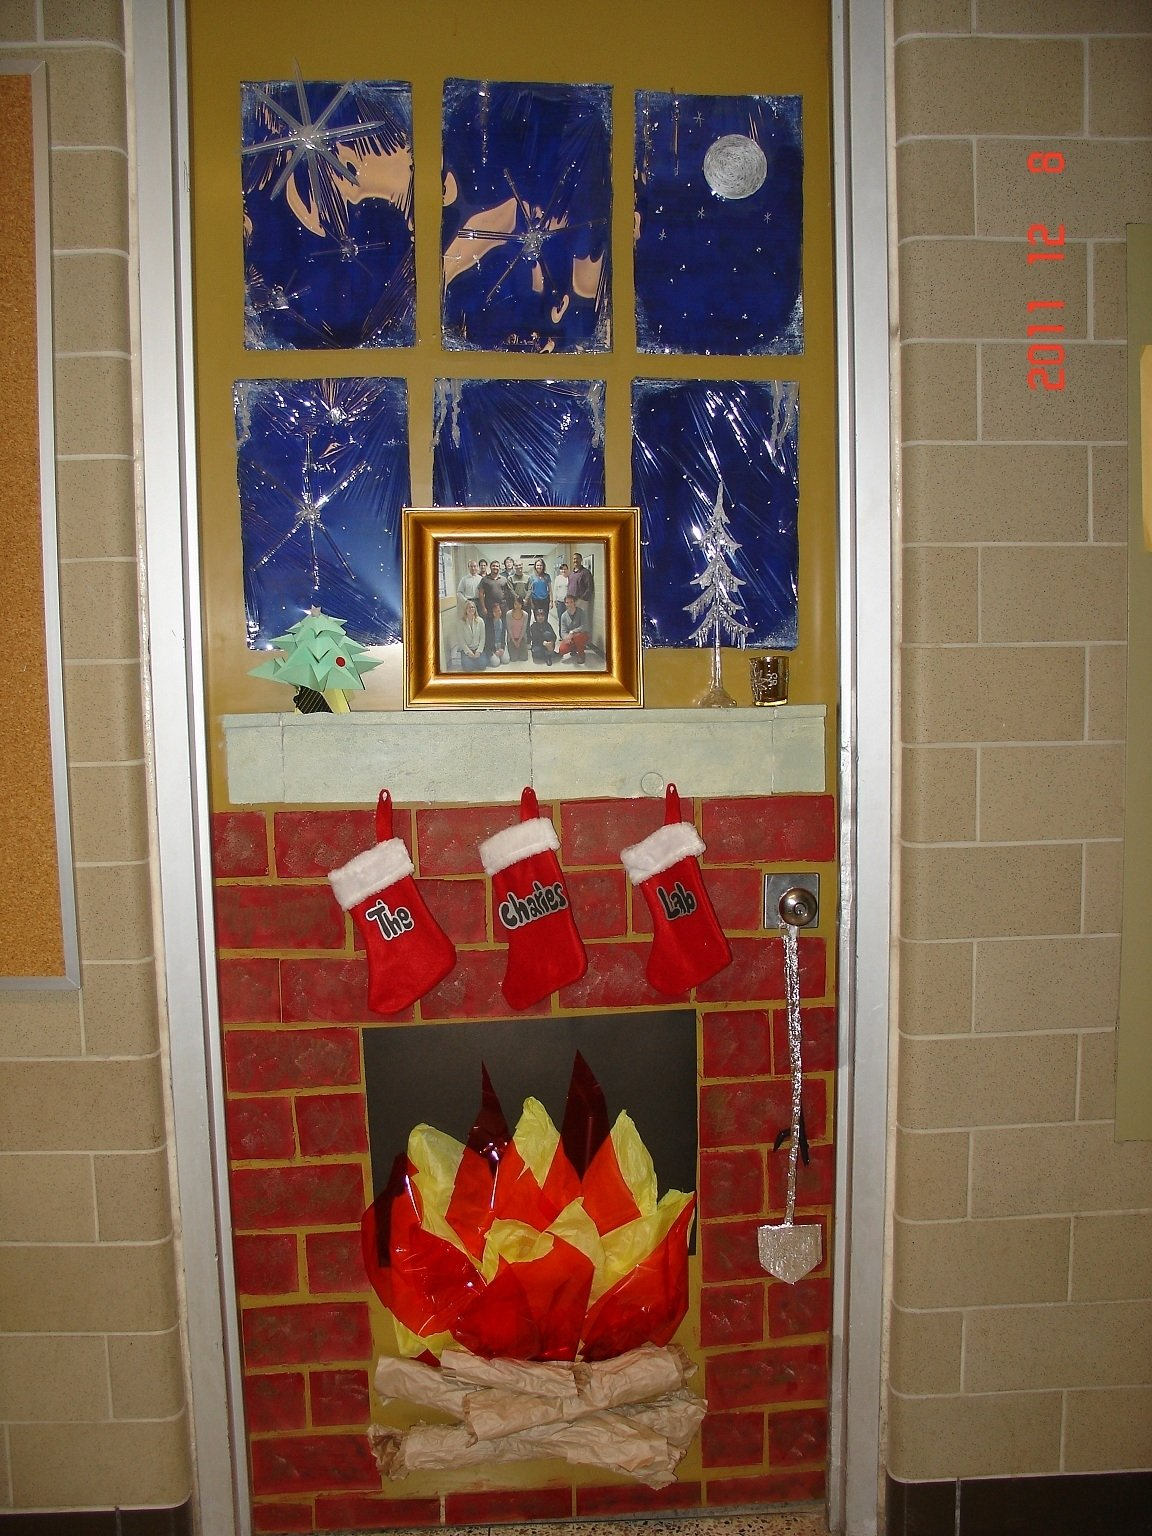 10 Famous Door Decoration Ideas For Christmas backyards christmas door decorations make charles lab target holiday